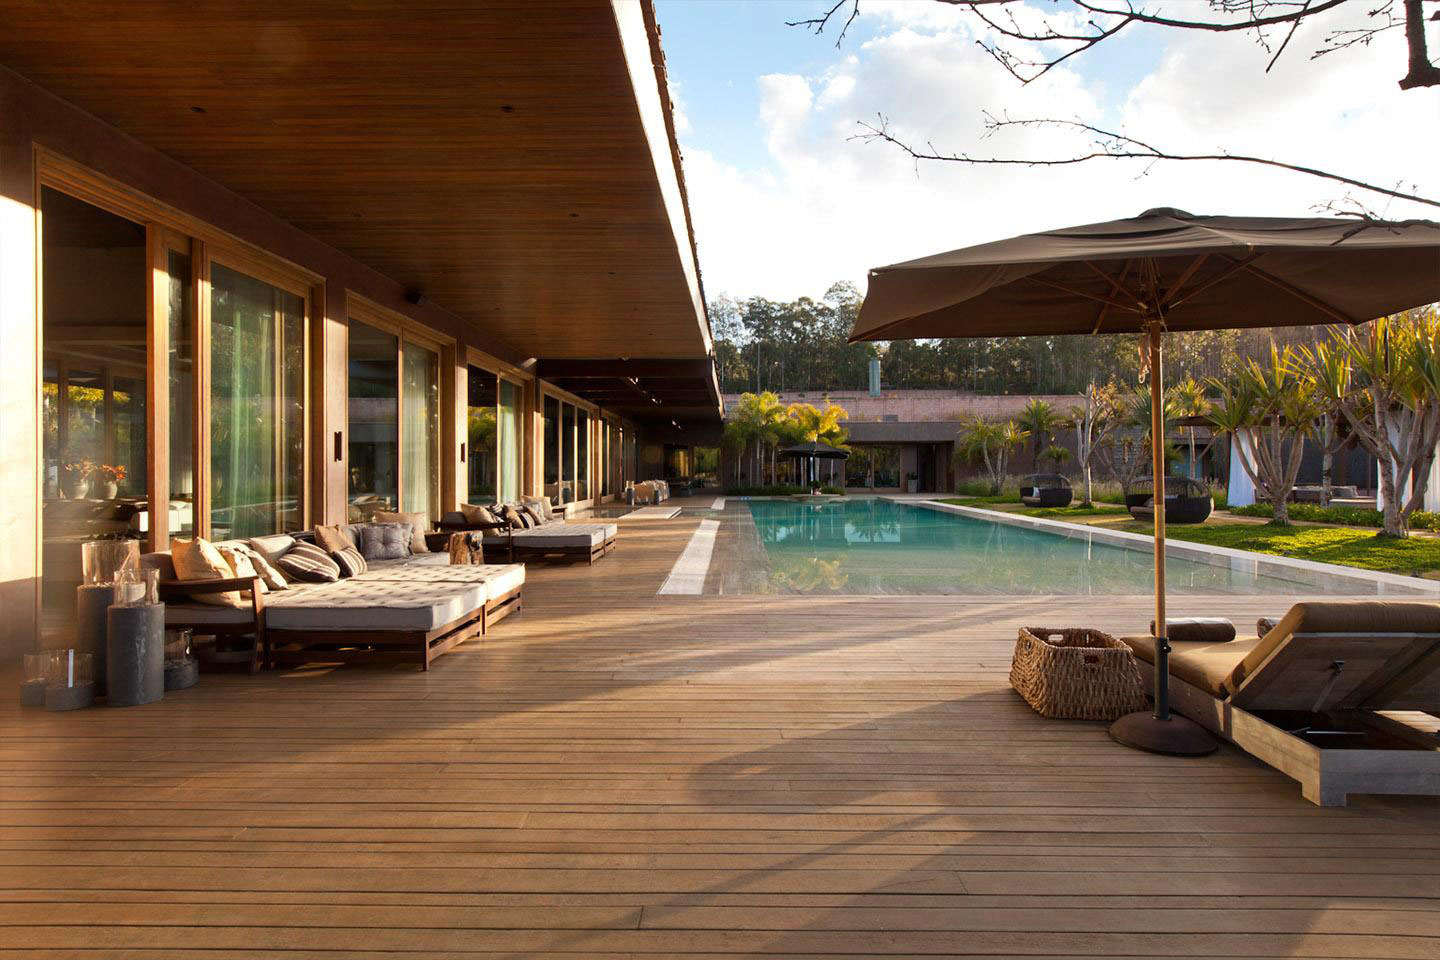 Deck, Terrace, Outdoor Pool, Furniture, House in Nova Lima, Brazil